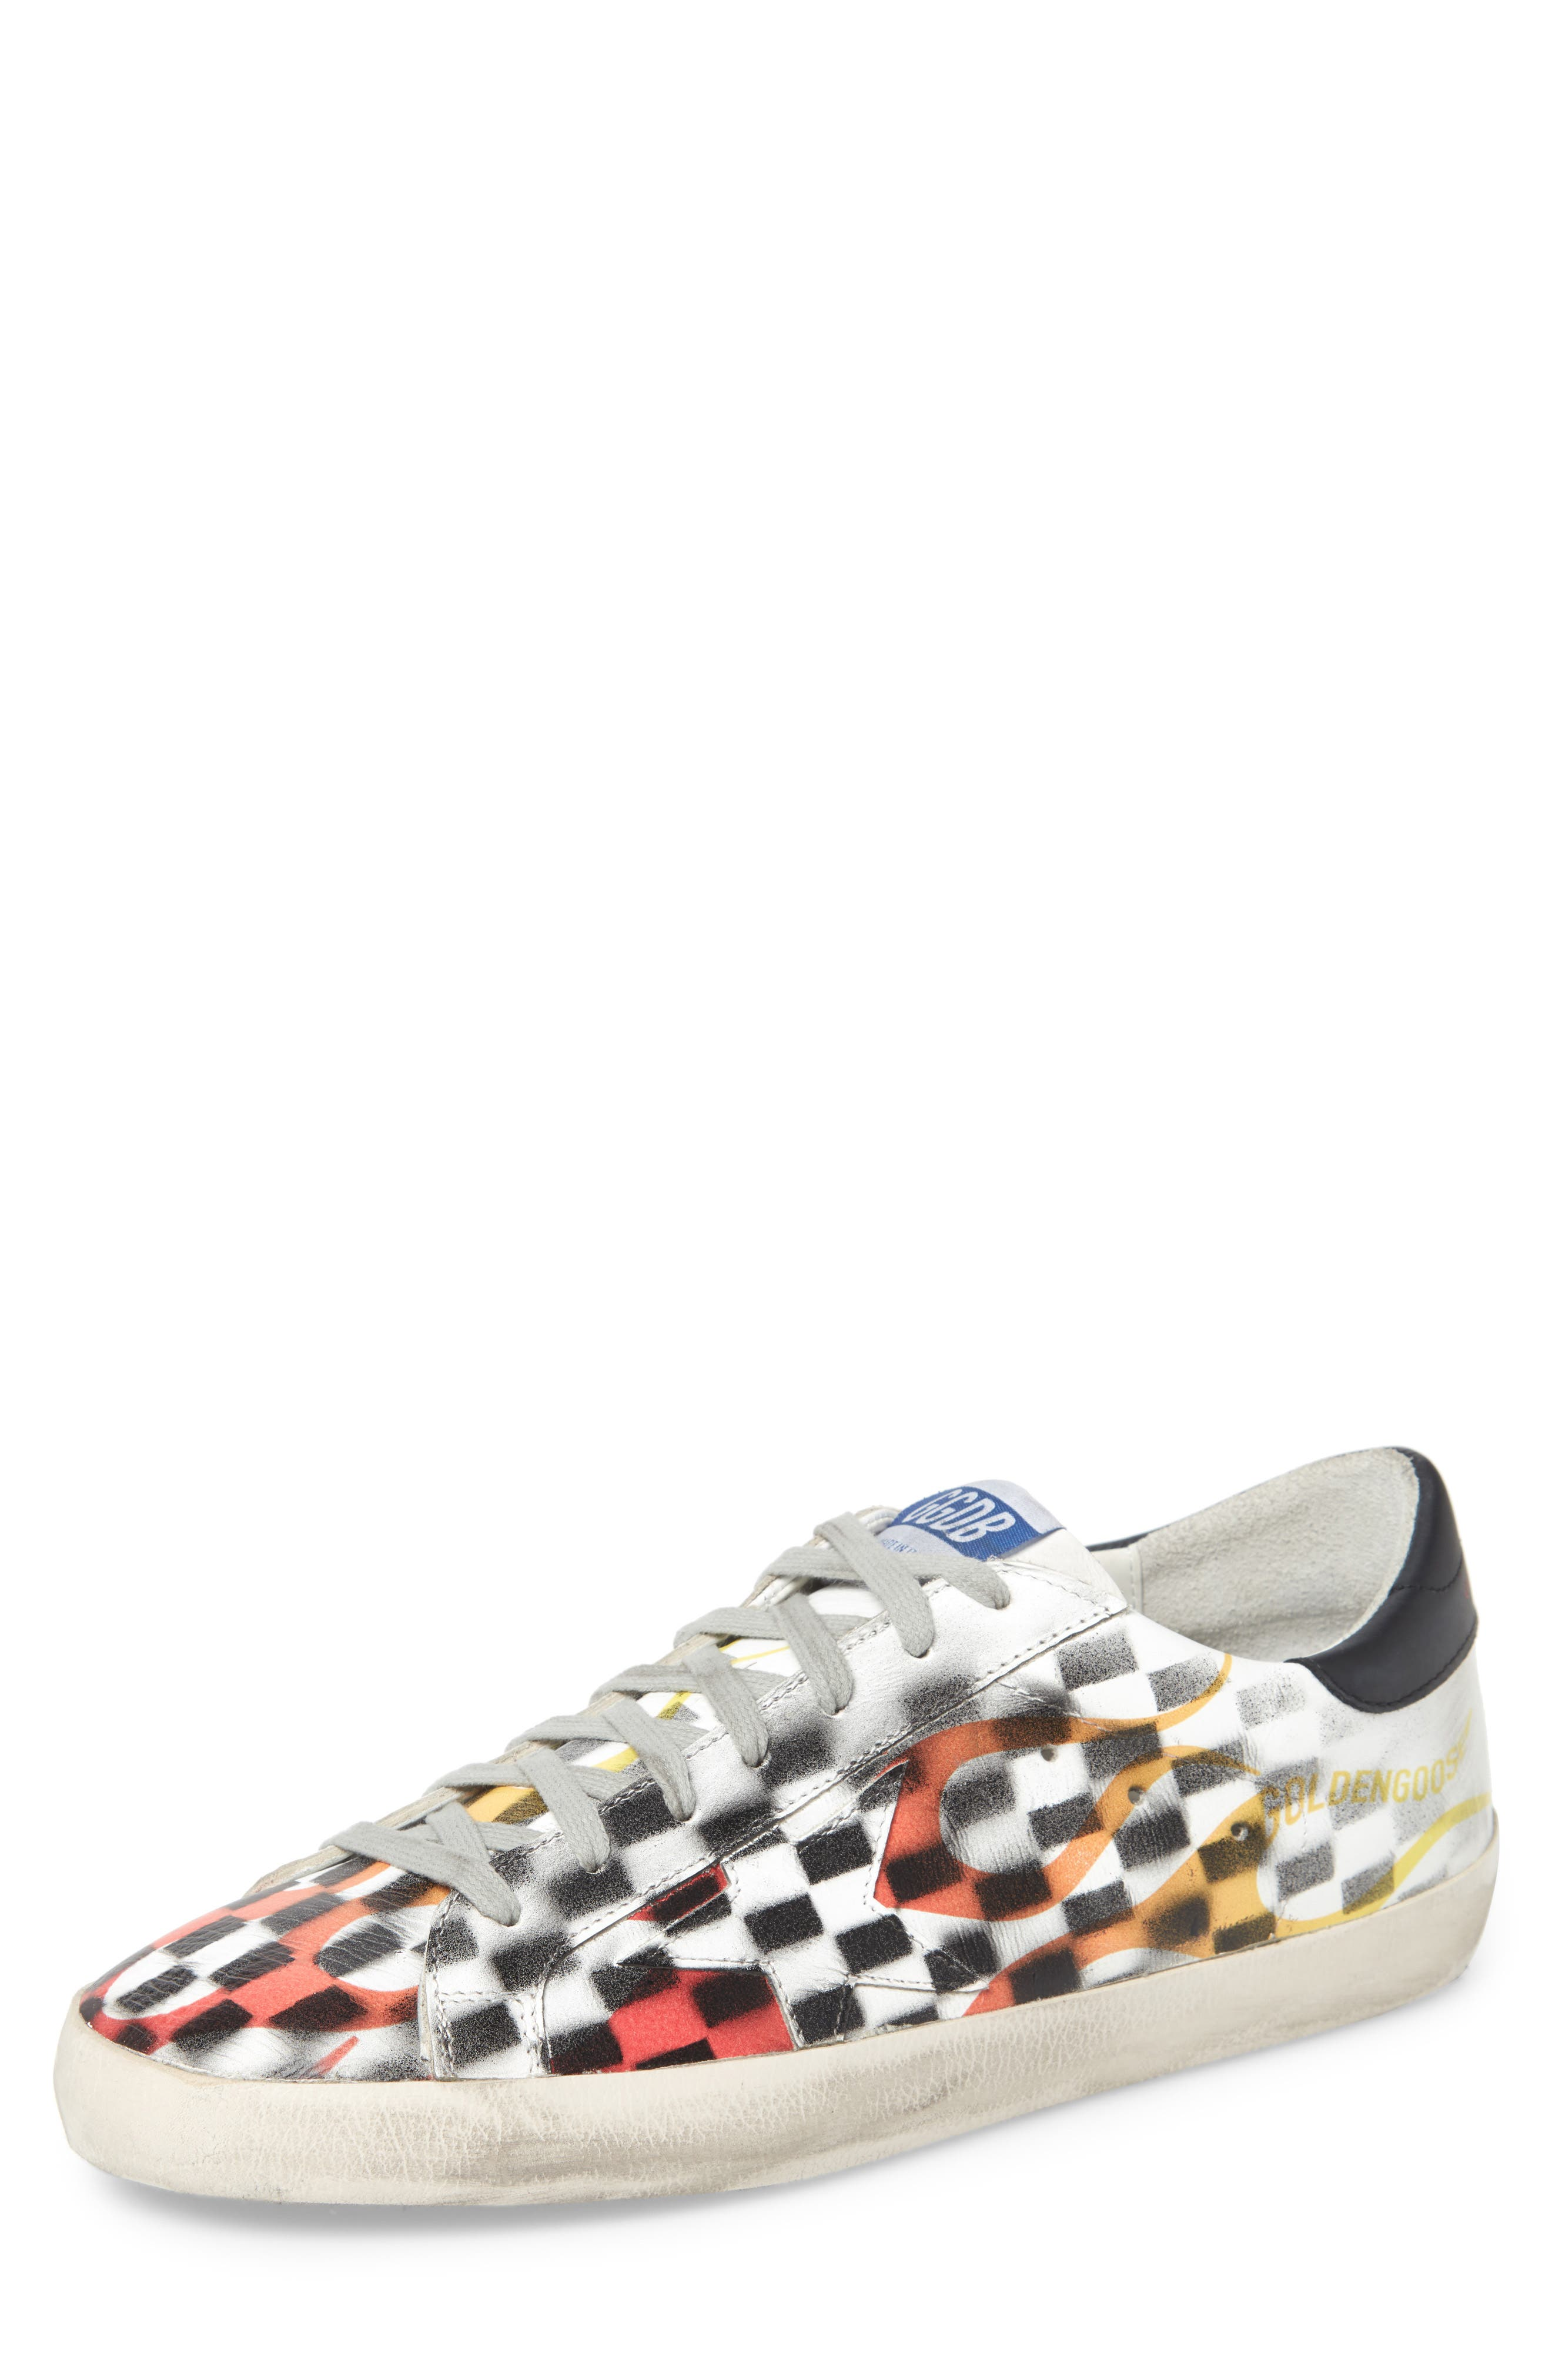 Superstar Low Top Sneaker, Main, color, WHITE FLAME DAMA